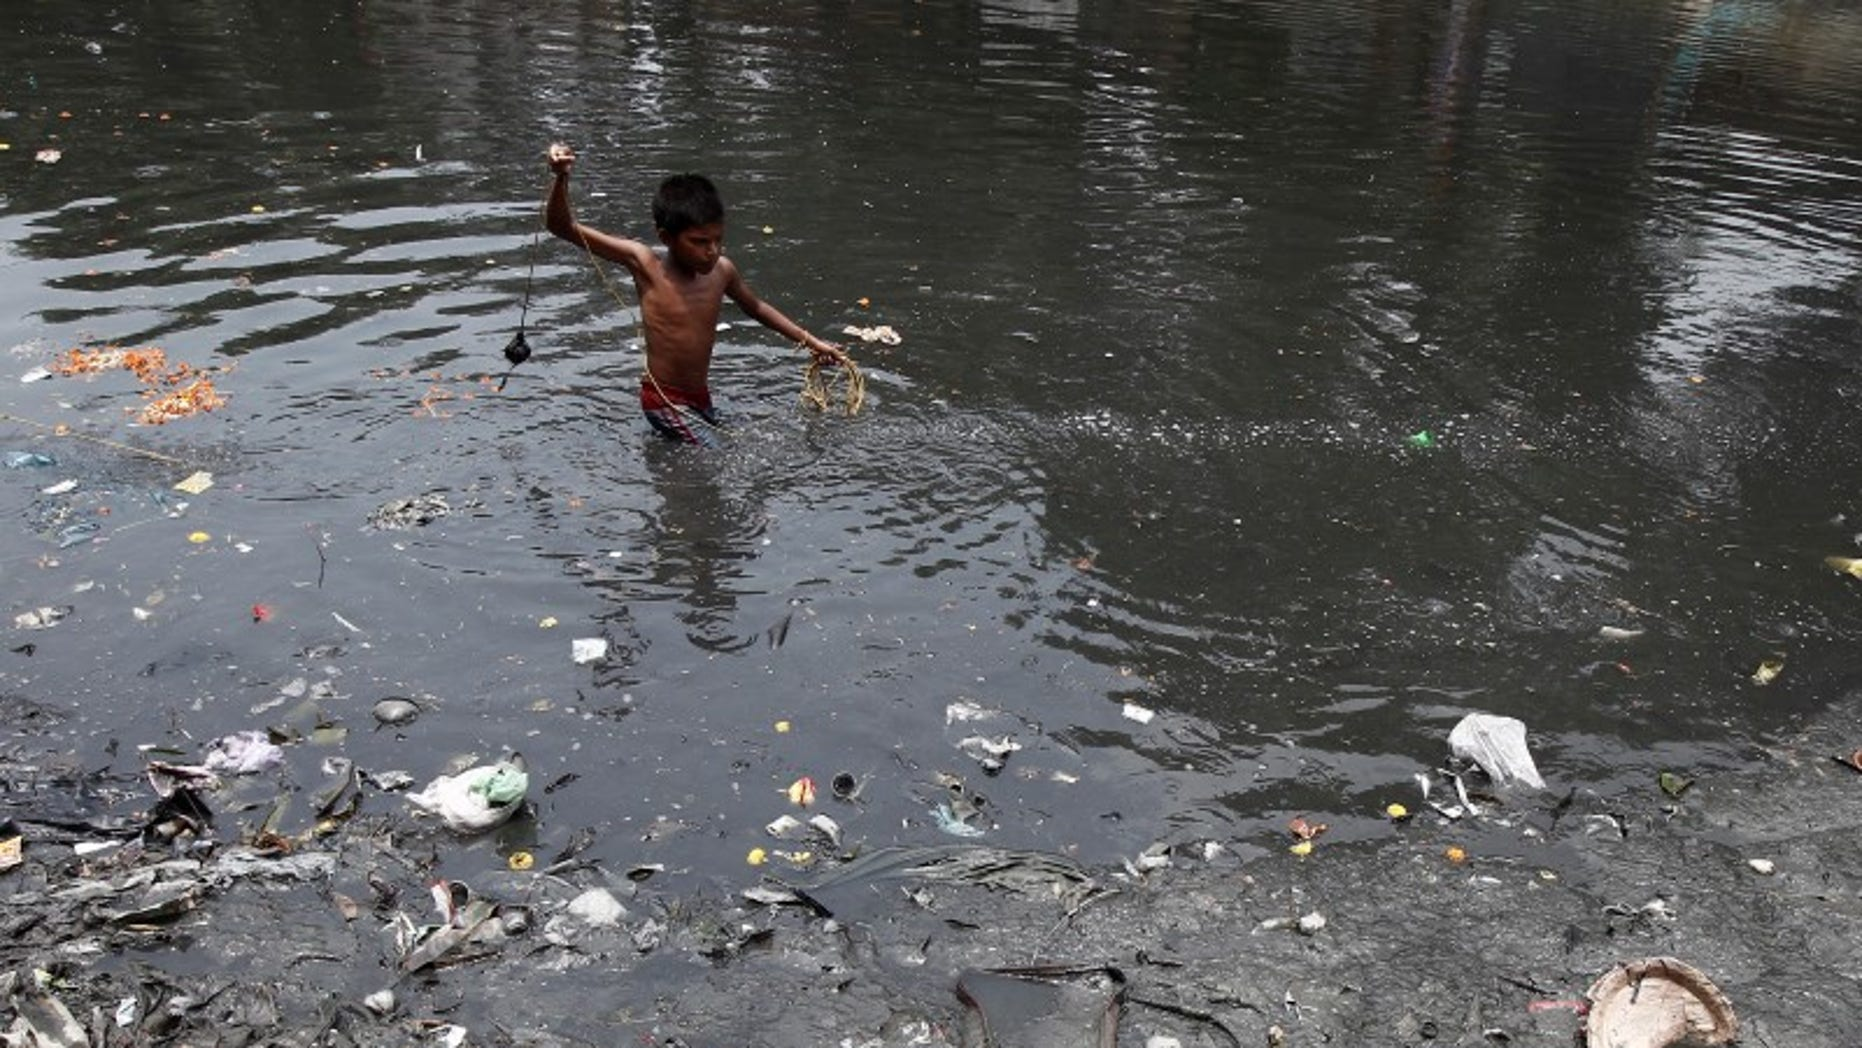 A boy searches for coins thrown by devotees as religious offerings in a polluted water channel near a temple in Kolkata